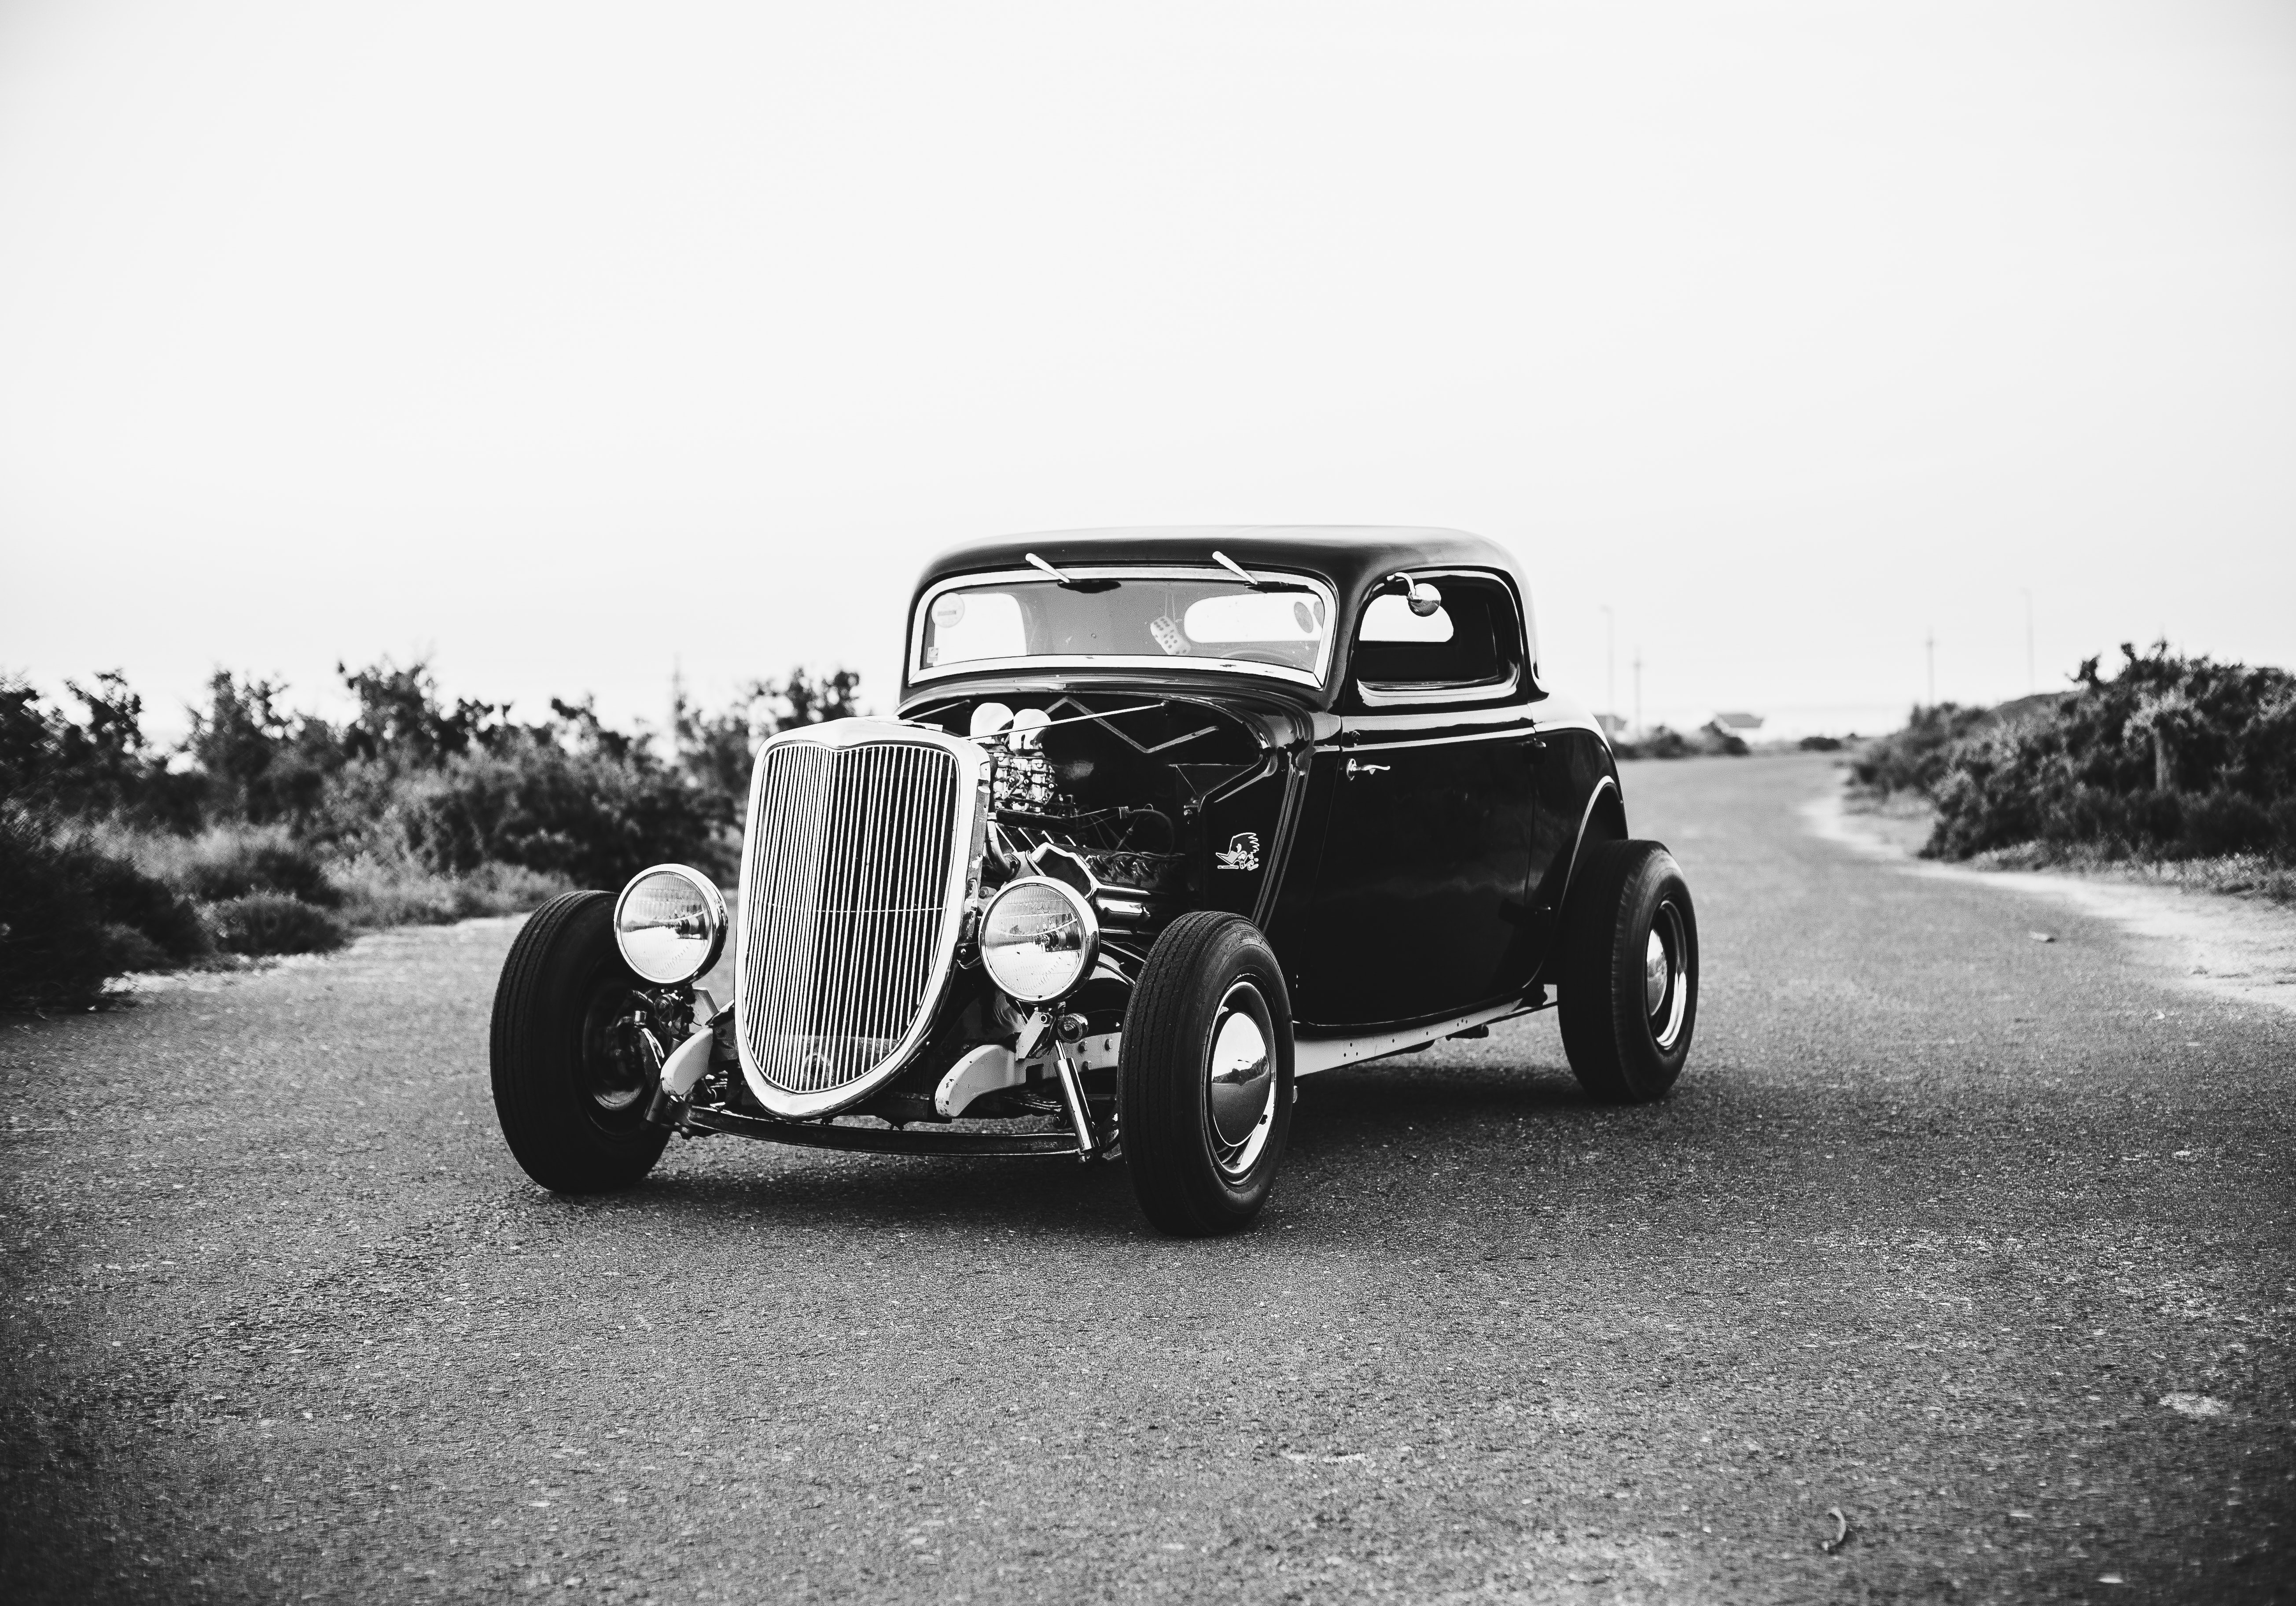 grayscale photography of vintage classic car